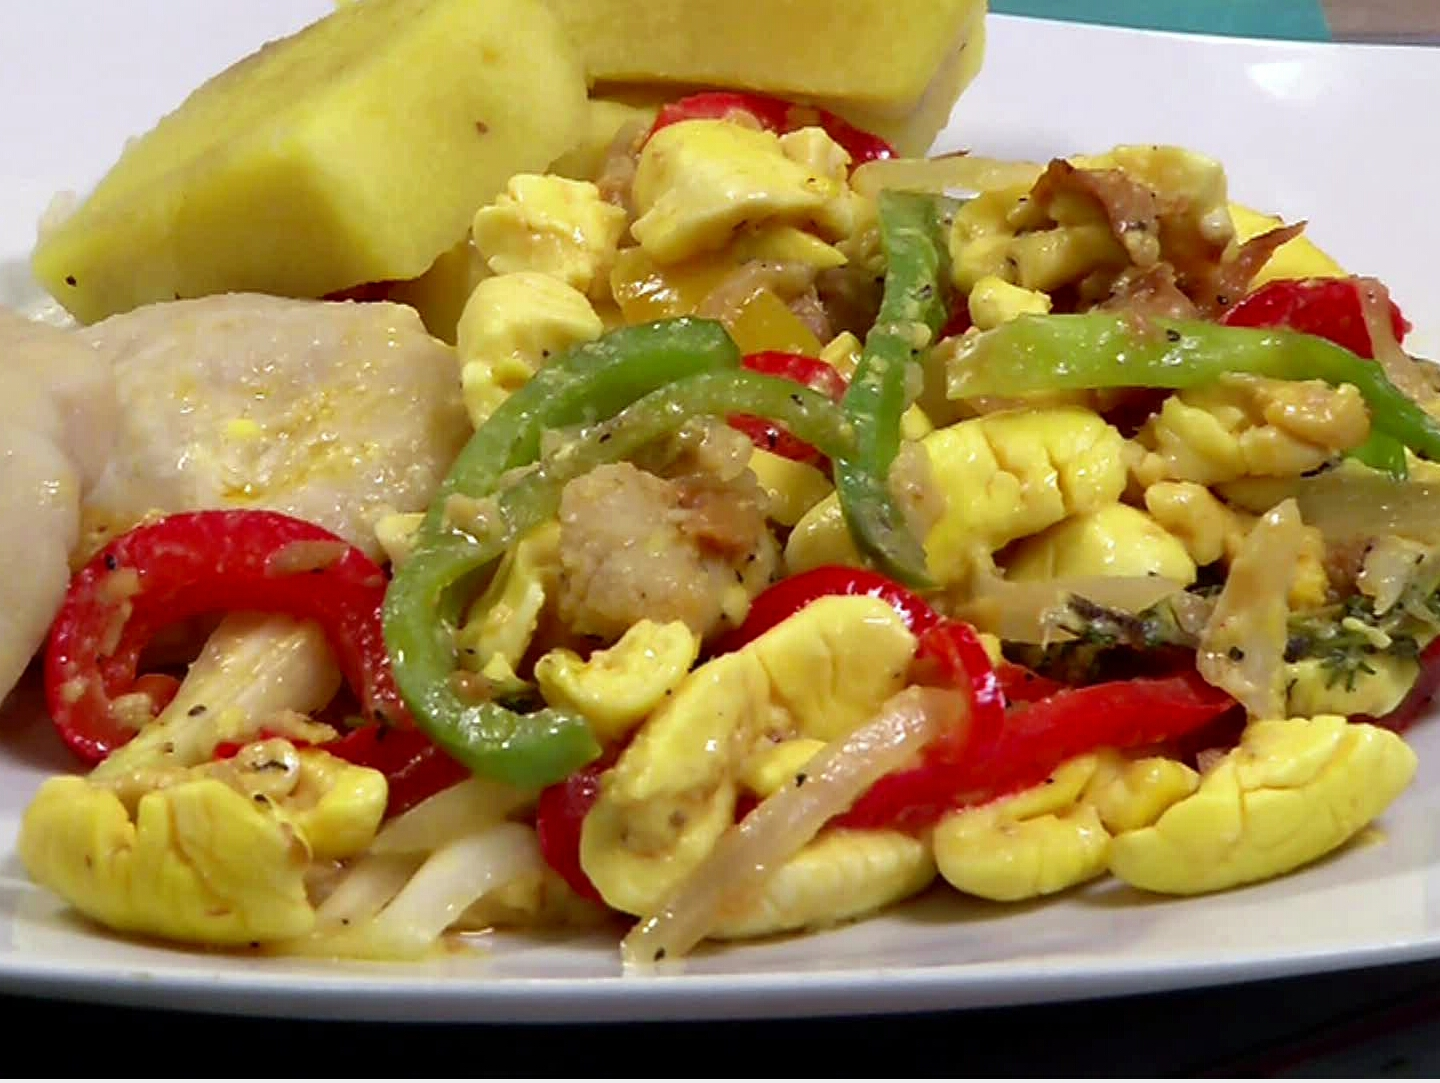 Ackee & salt fish with food